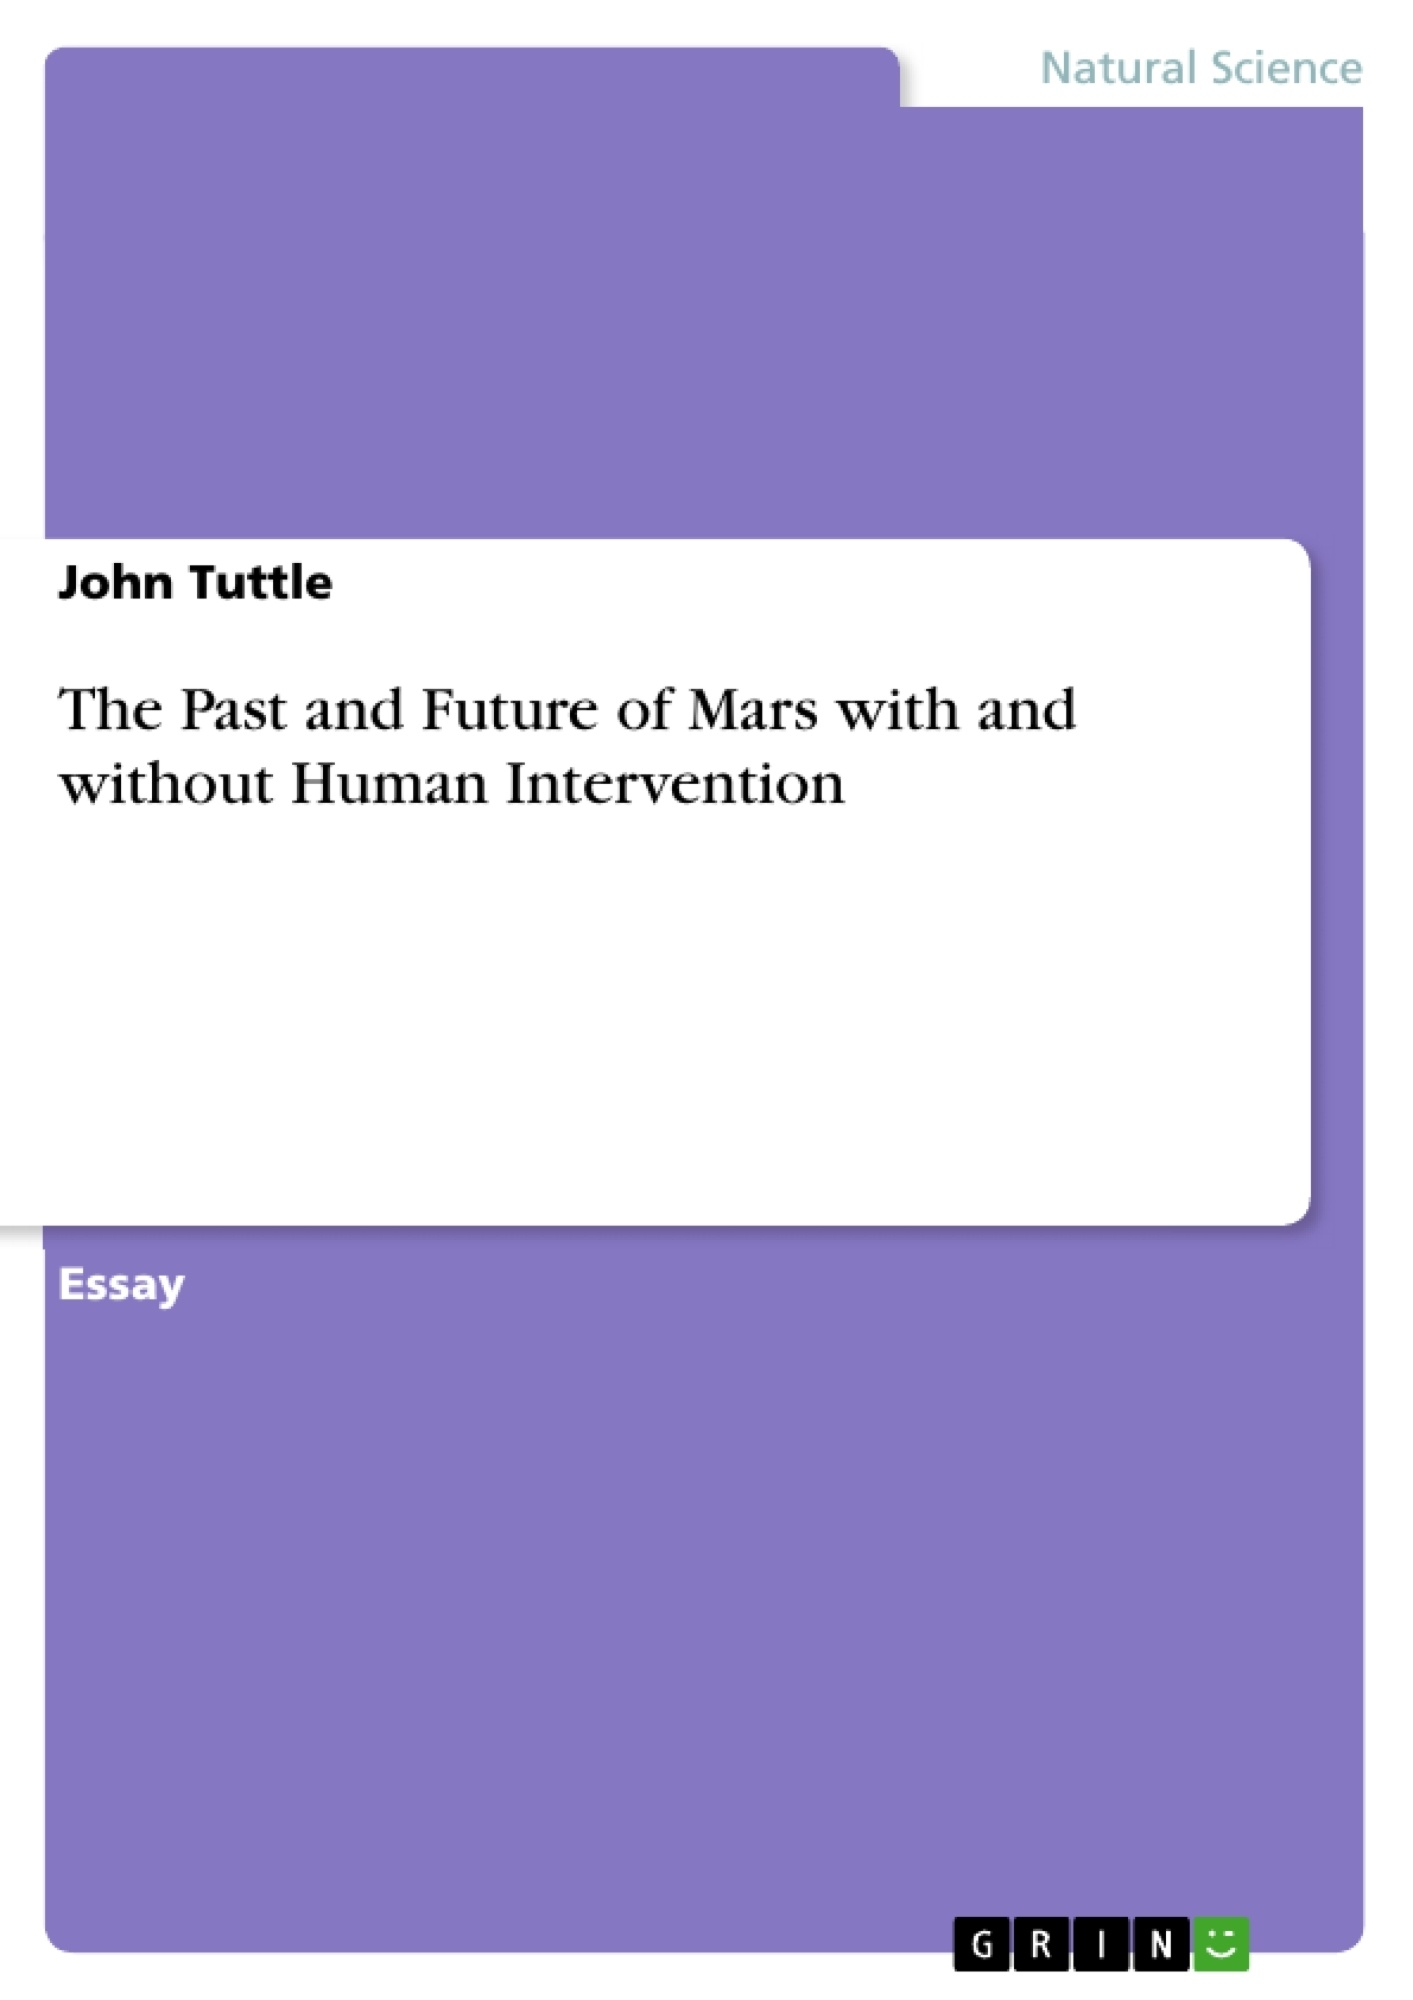 Title: The Past and Future of Mars with and without Human Intervention